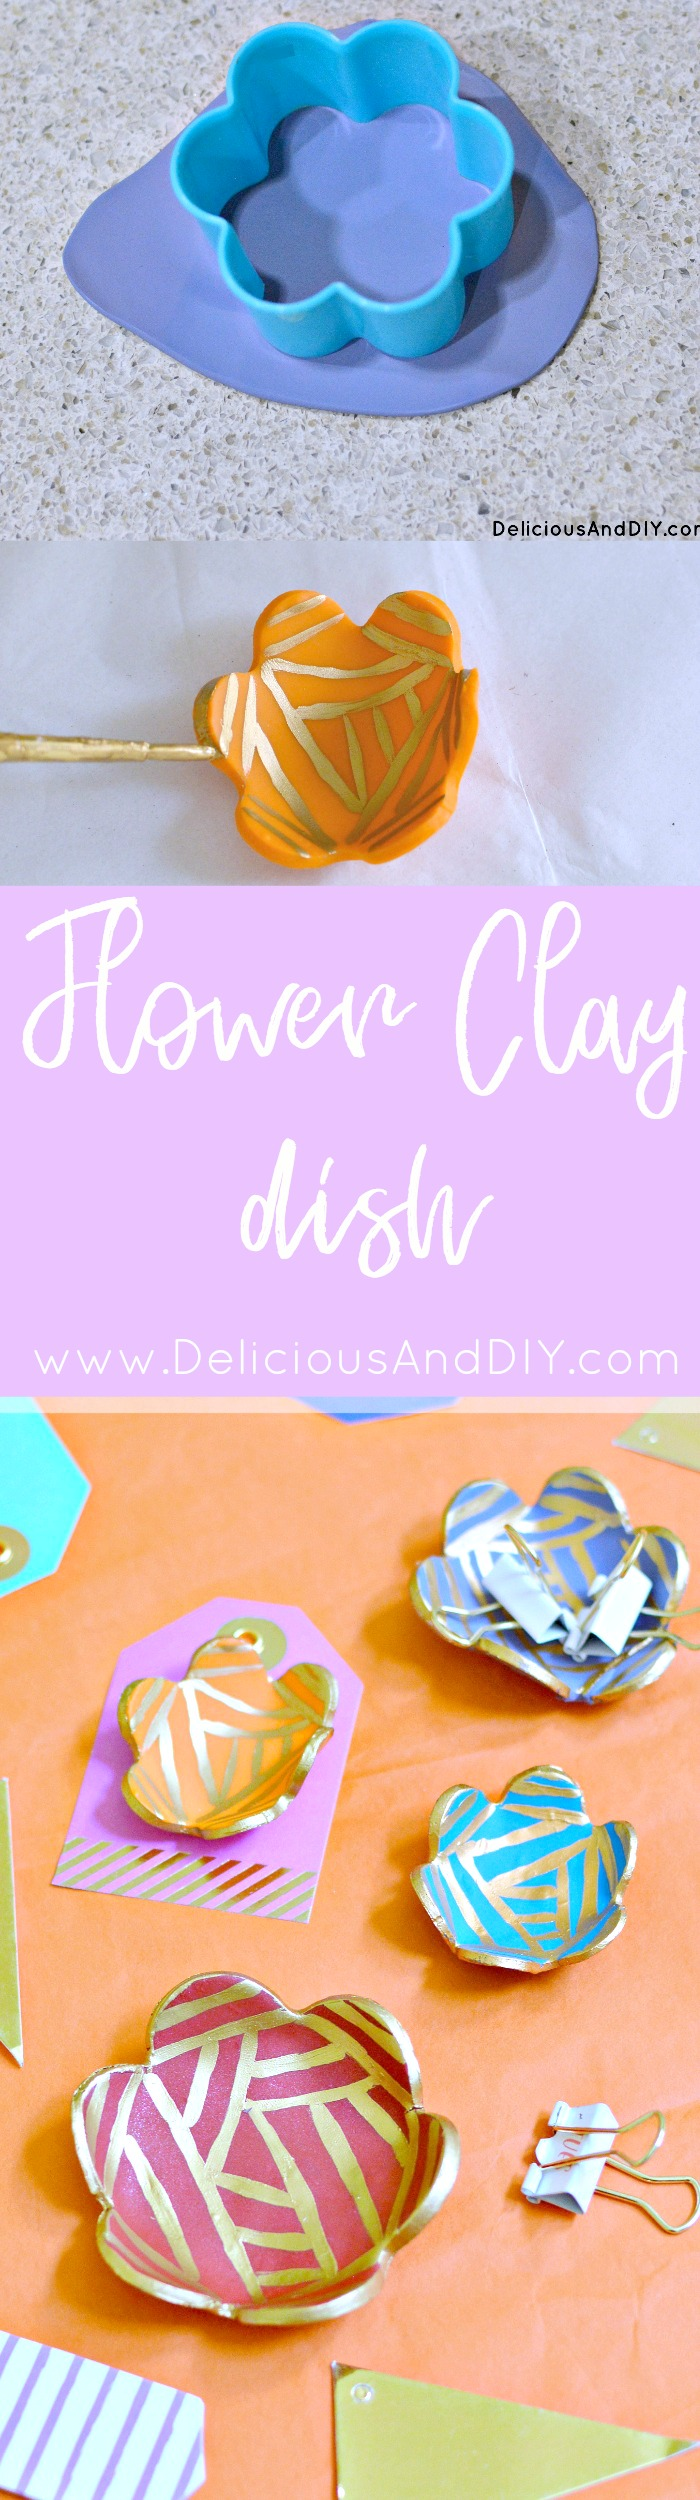 Flower Clay Dish| Clay Projects| DIY Crafts| Flower Clay Cup Dish| Clay Ring Bowls| Handmade Clay Crafts| DIY Projects| Hand painted Craft Projects| DIY Ring Dish| DIY Flower Clay Dish